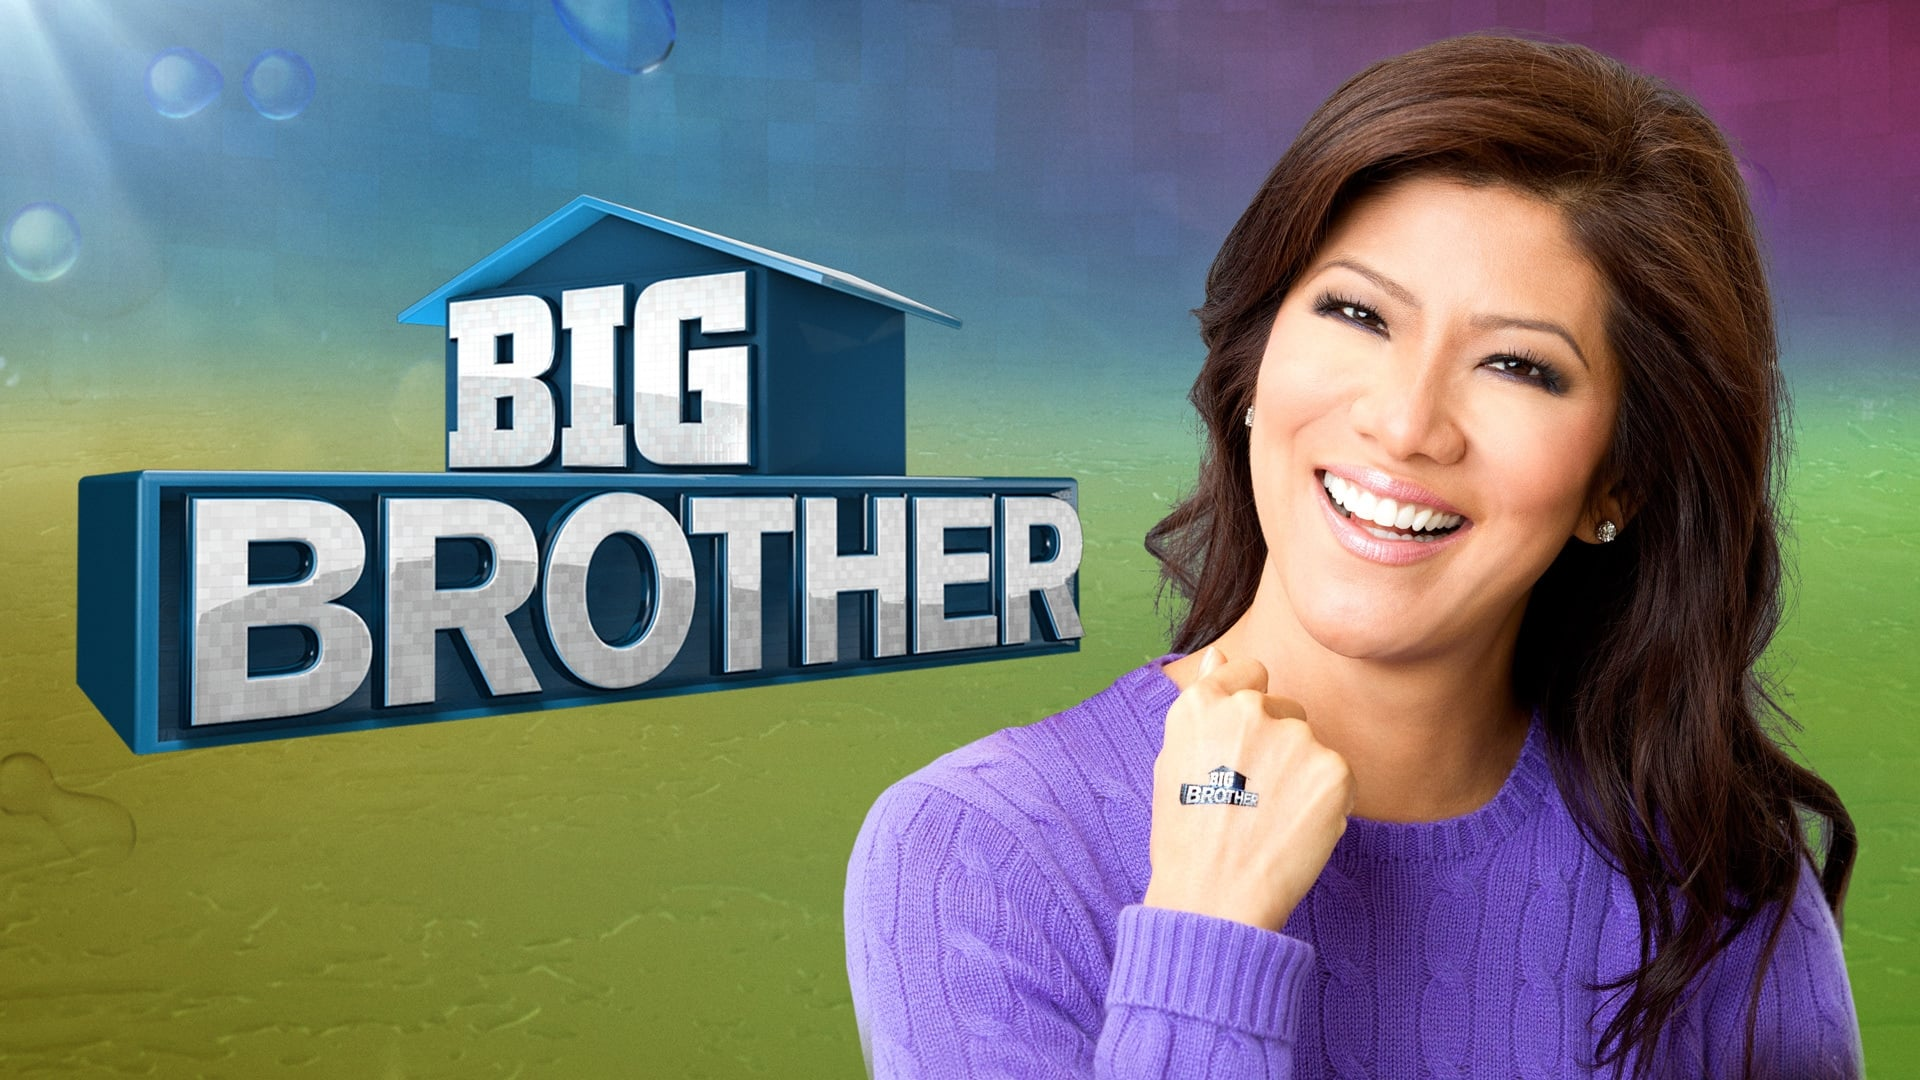 Big Brother - Season 7